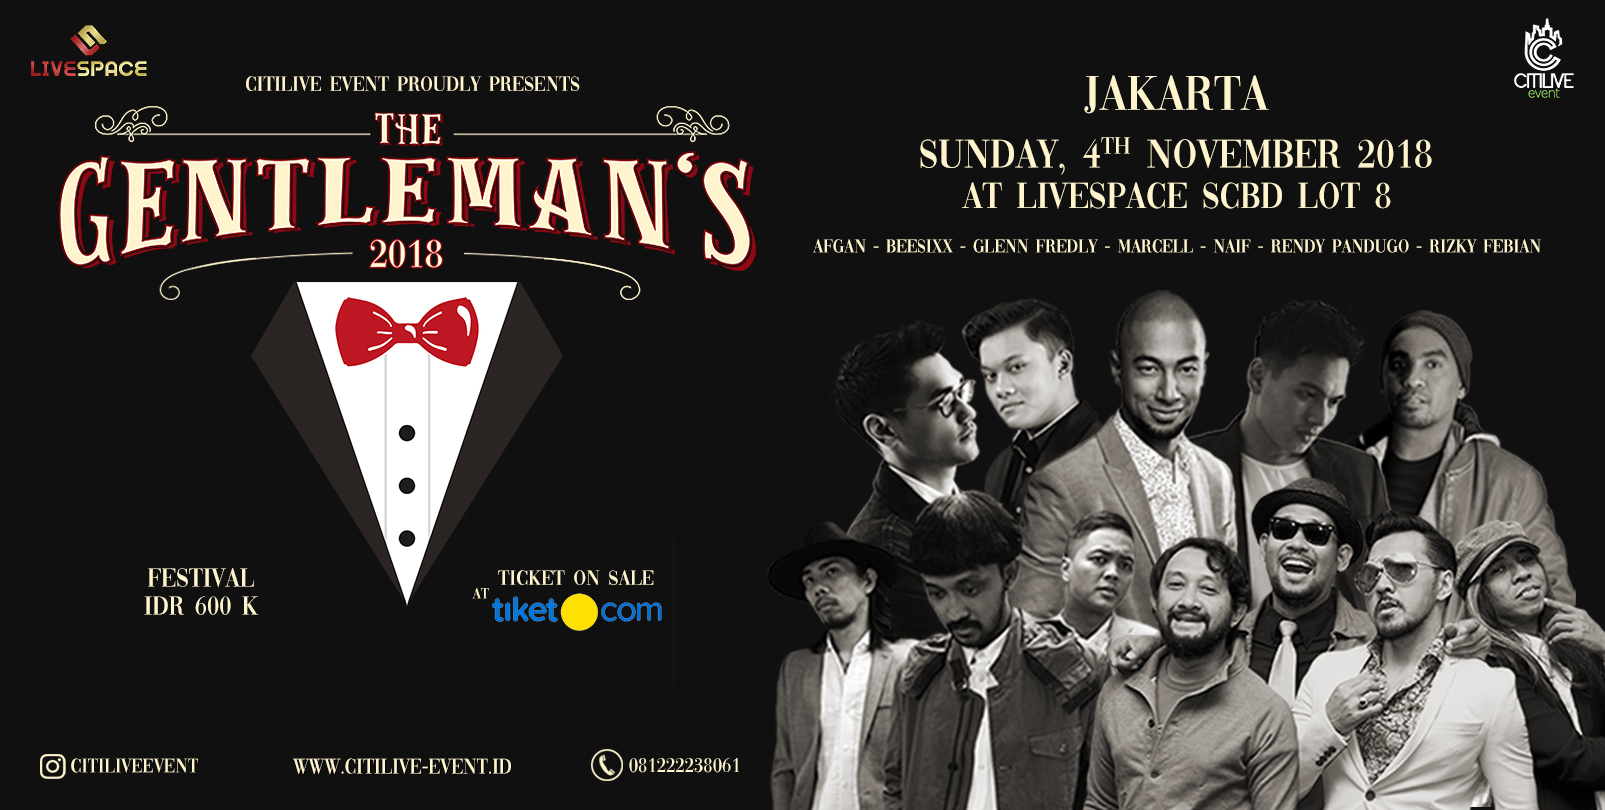 The Gentleman's Indonesia Tour 2018